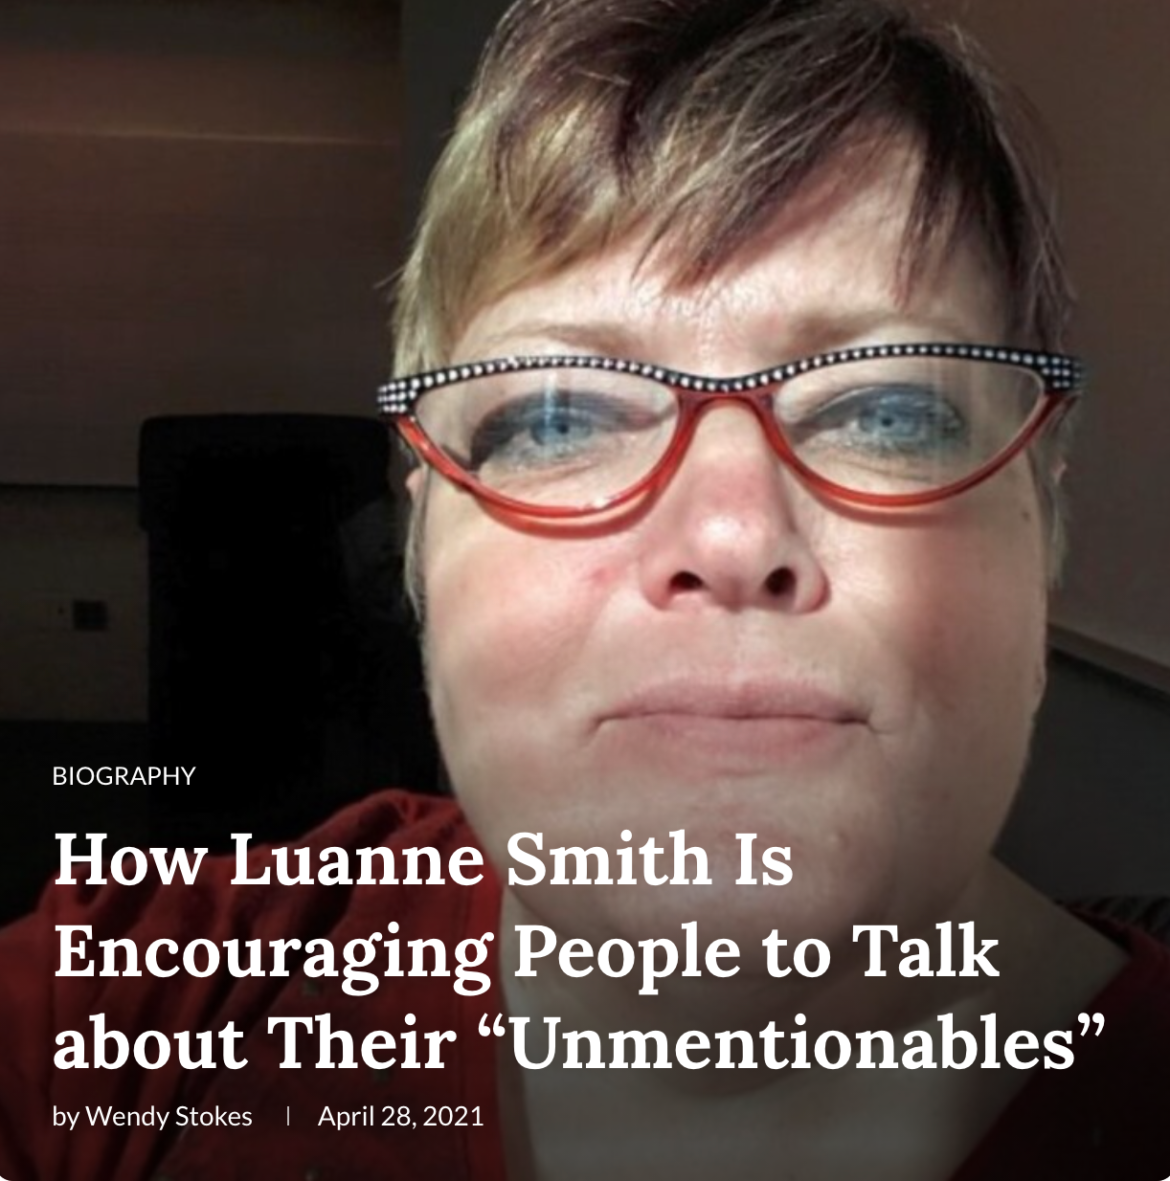 """Title image for article by Wendy Stokes about Luanne, """"How Luanne Smith is Encouraging People to Talk about Their 'Unmentionables'"""". Photo in background shows Luanne with a cheeky grin and a pair of cool cat-eye glasses in red with sparkles."""